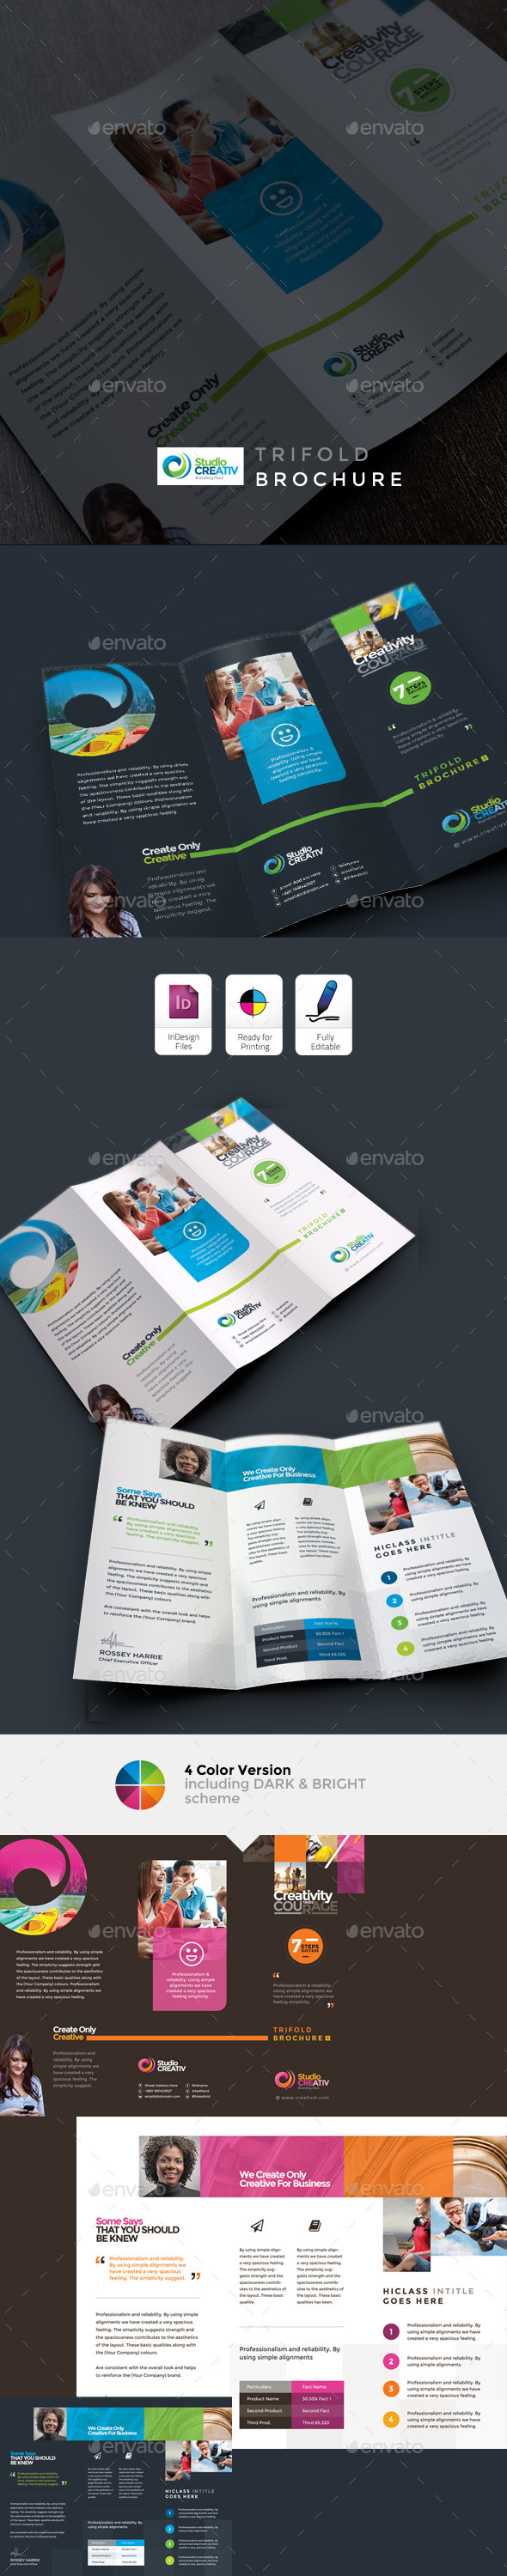 GraphicRiver Creative Clean Trifold Brochure 9596927